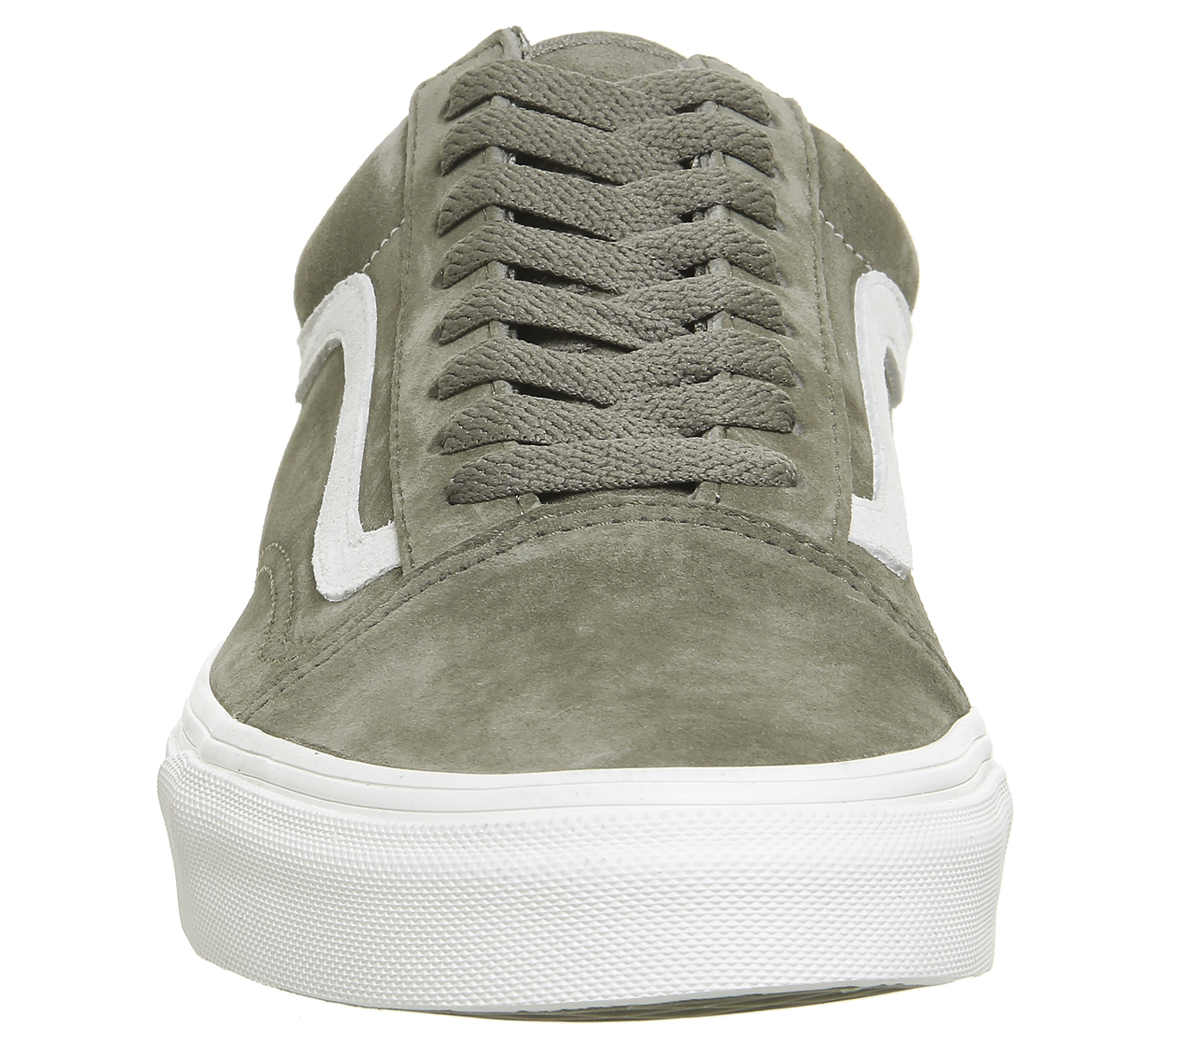 c901073adf Mens Vans Old Skool Trainers FALLEN ROCK BLANC Trainers Shoes